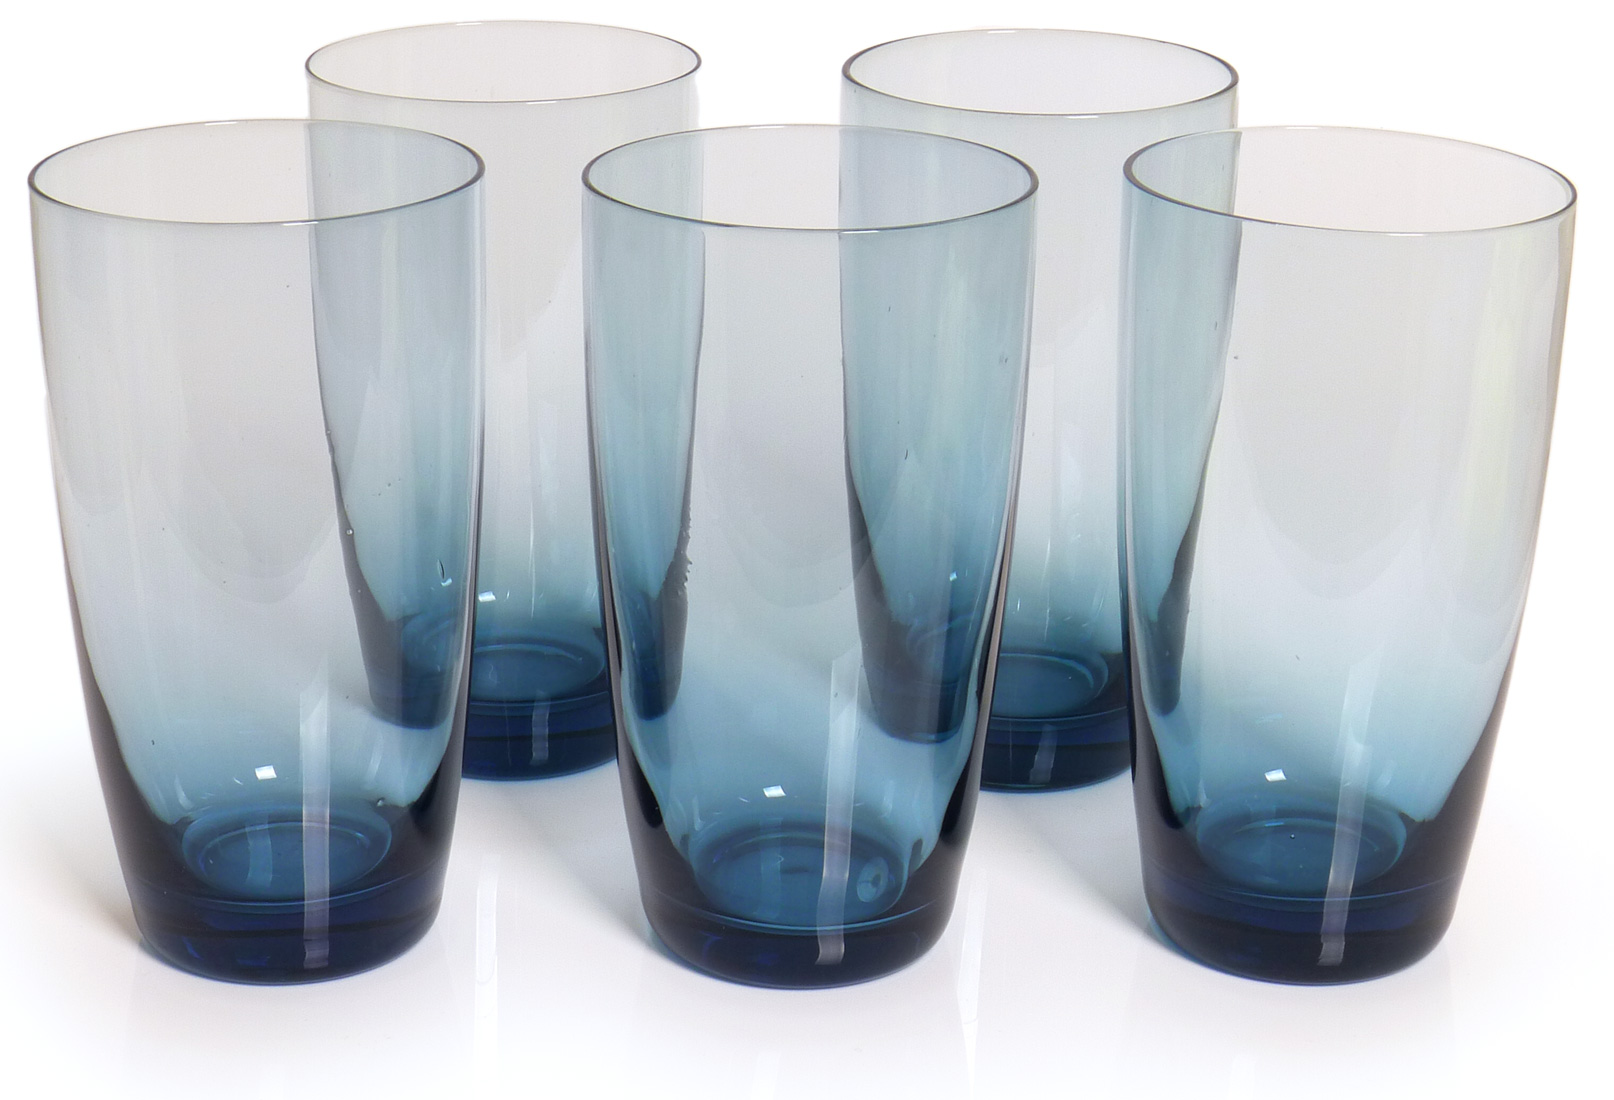 Image of Handcrafted Tall Glass Tumblers, 18-ounce, Blue, Set of 6